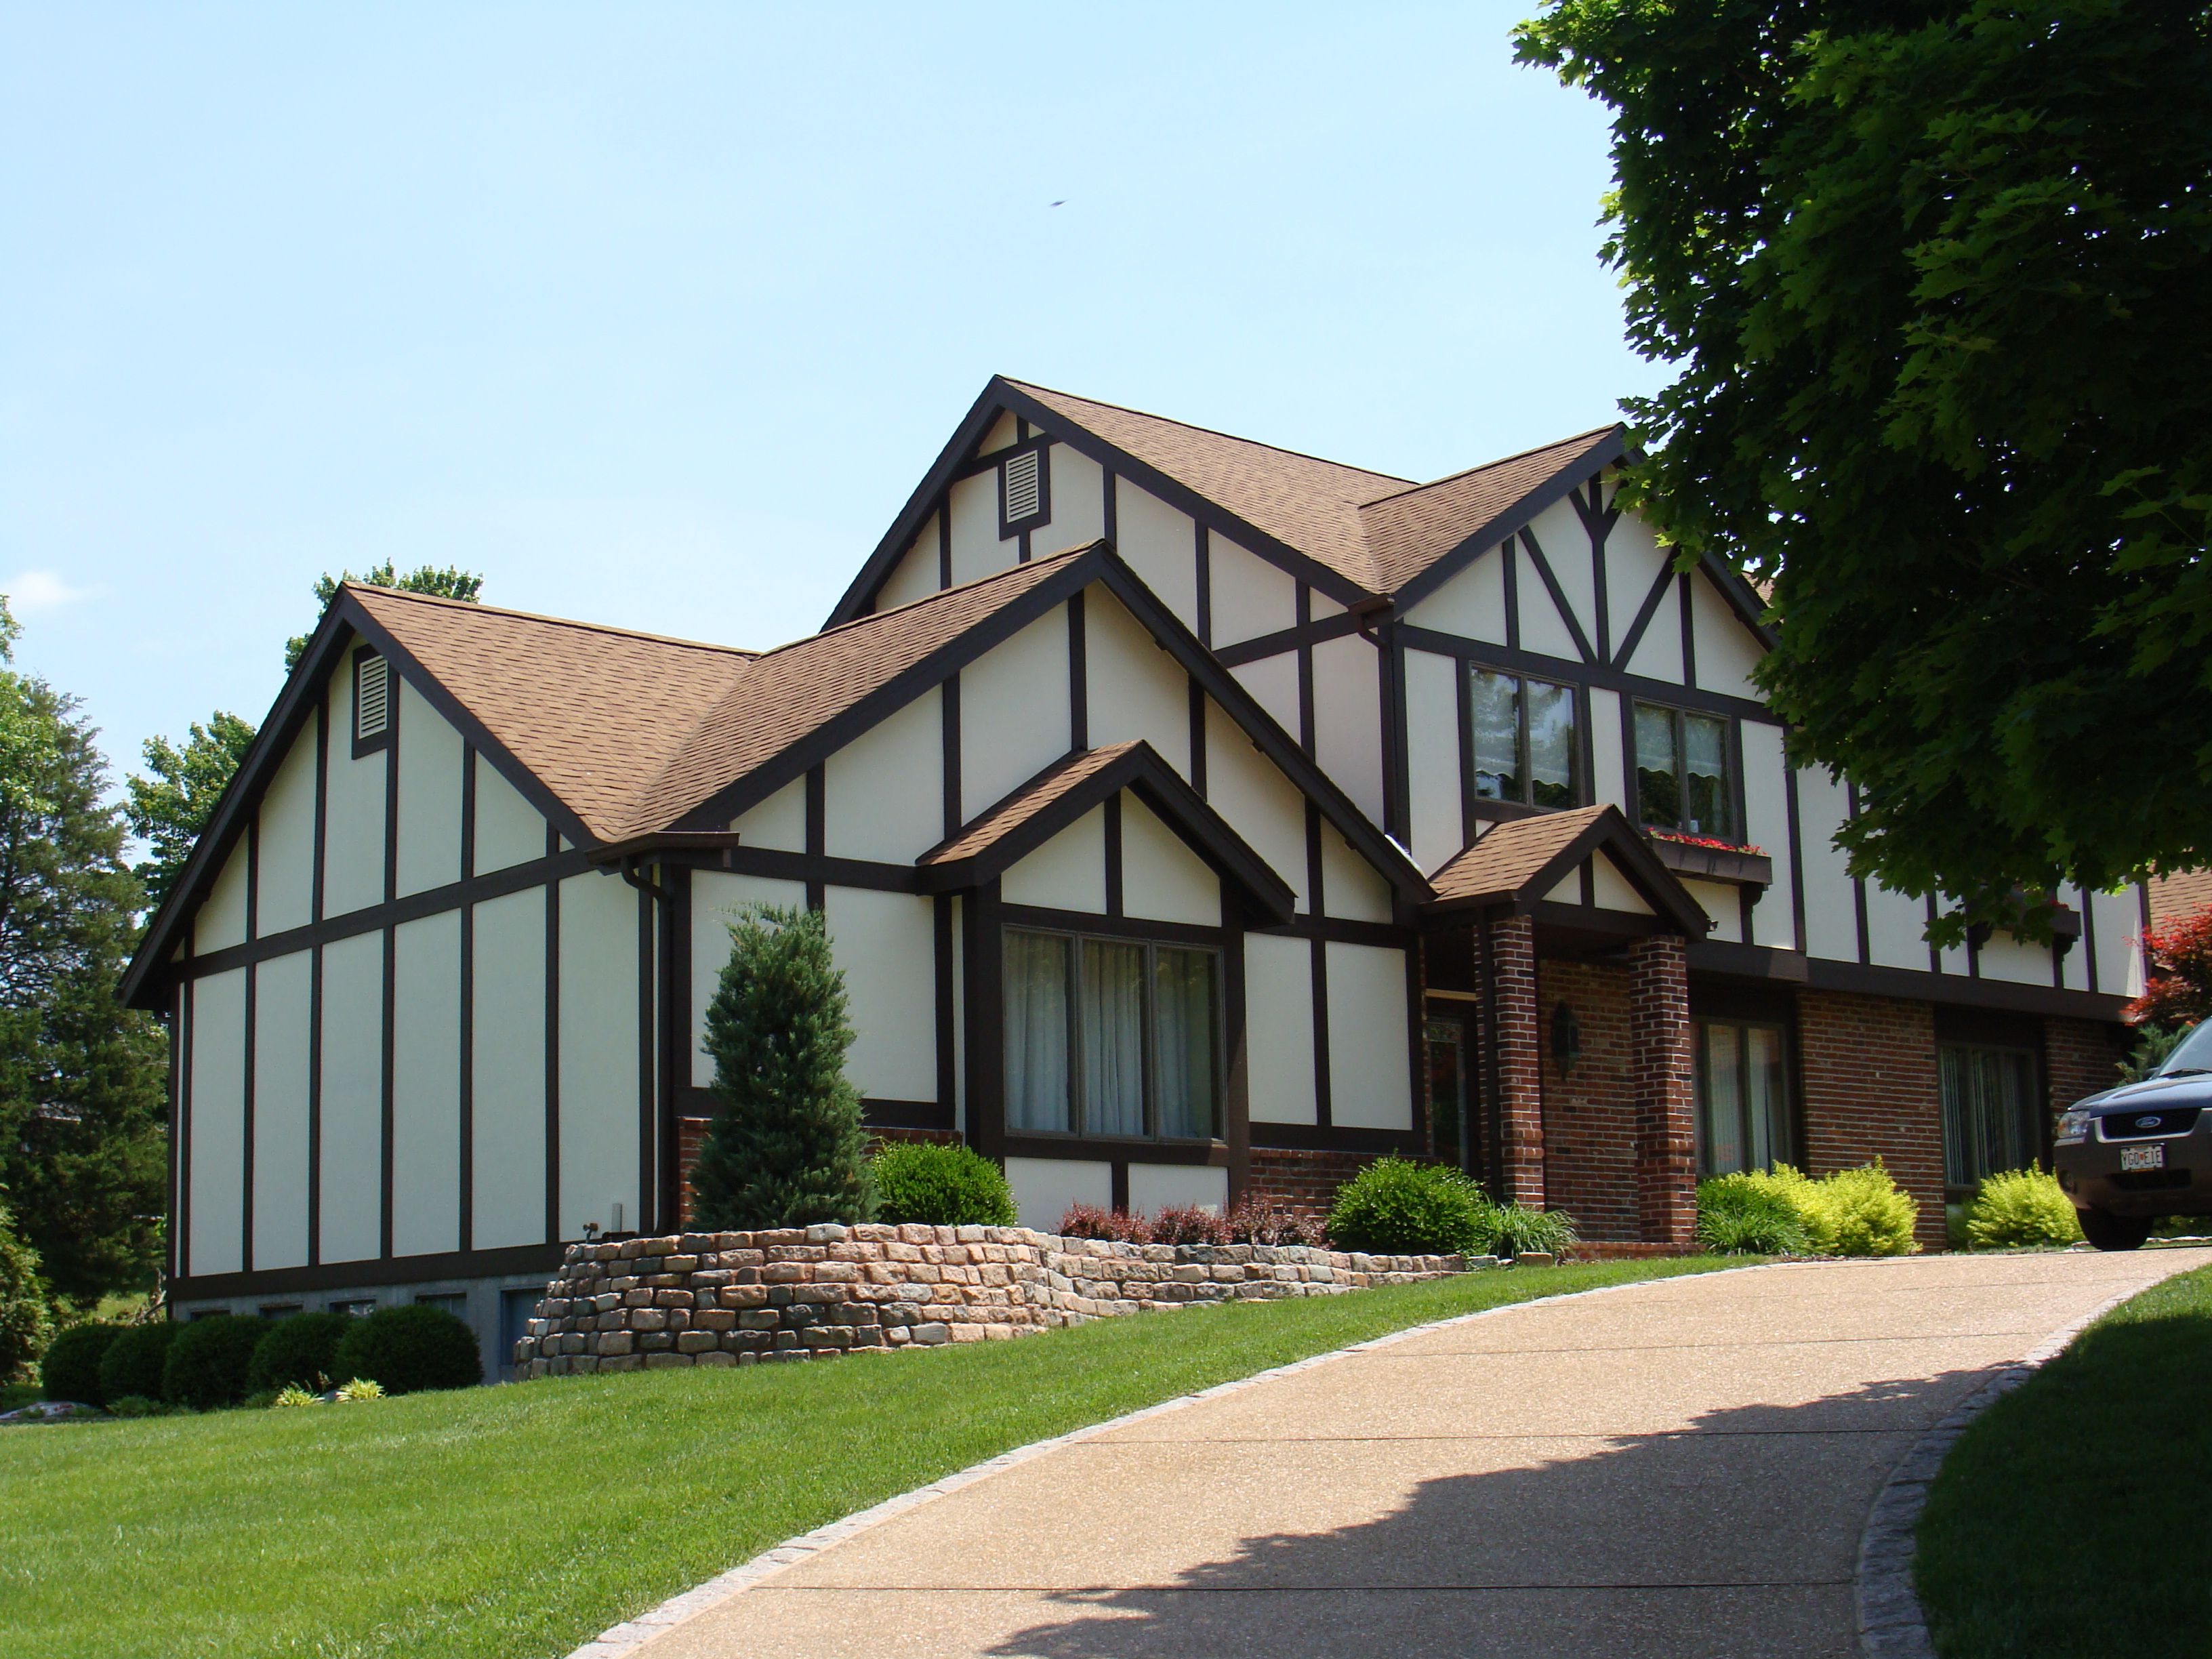 Stucco Cement Board Siding : St louis siding hardie board cement fiber